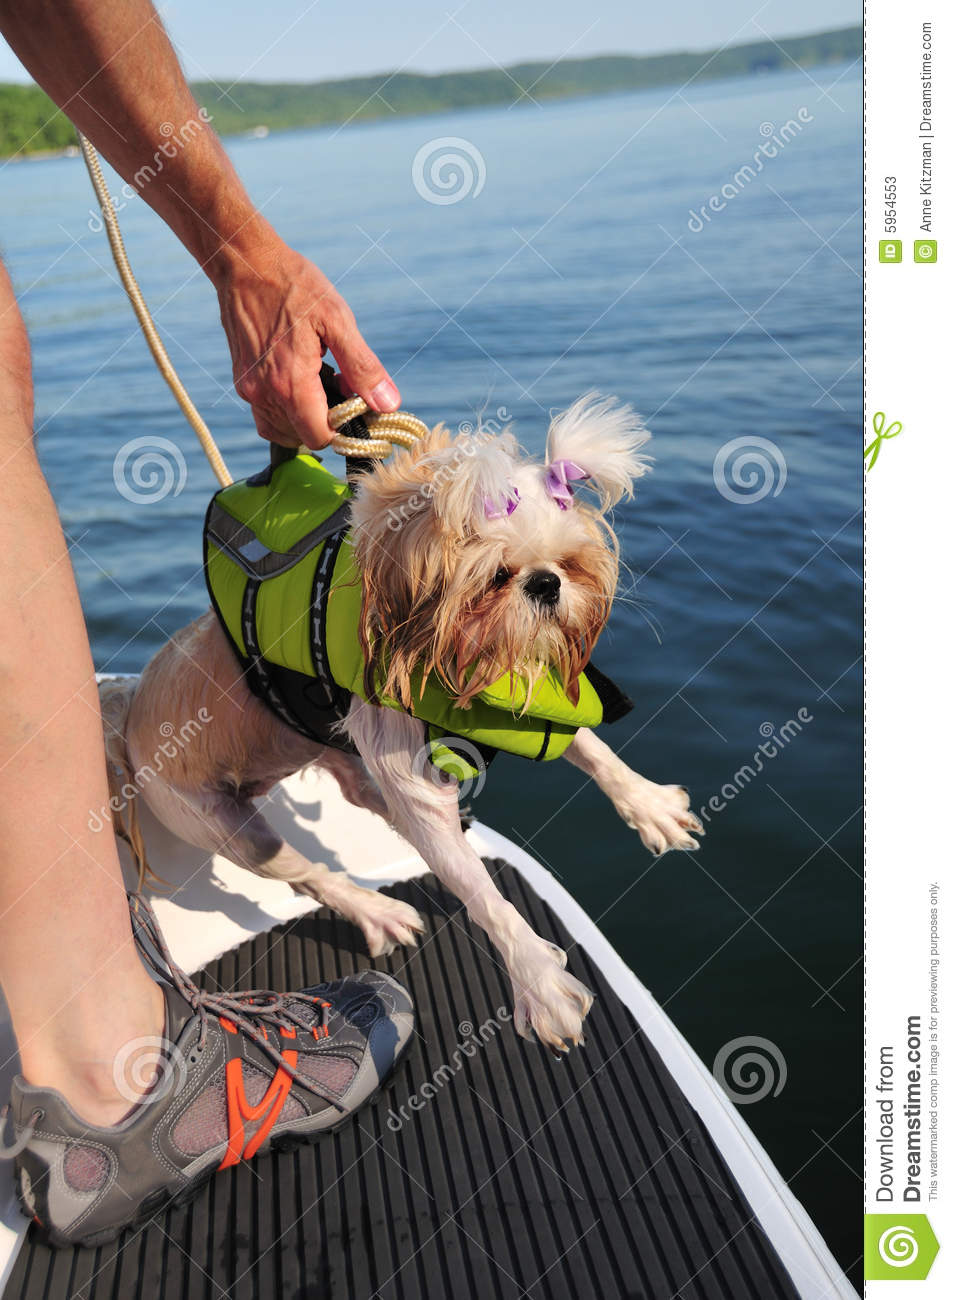 Shih Tzu Puppy Rescue Stock Image Image Of Scared Canine 5954553